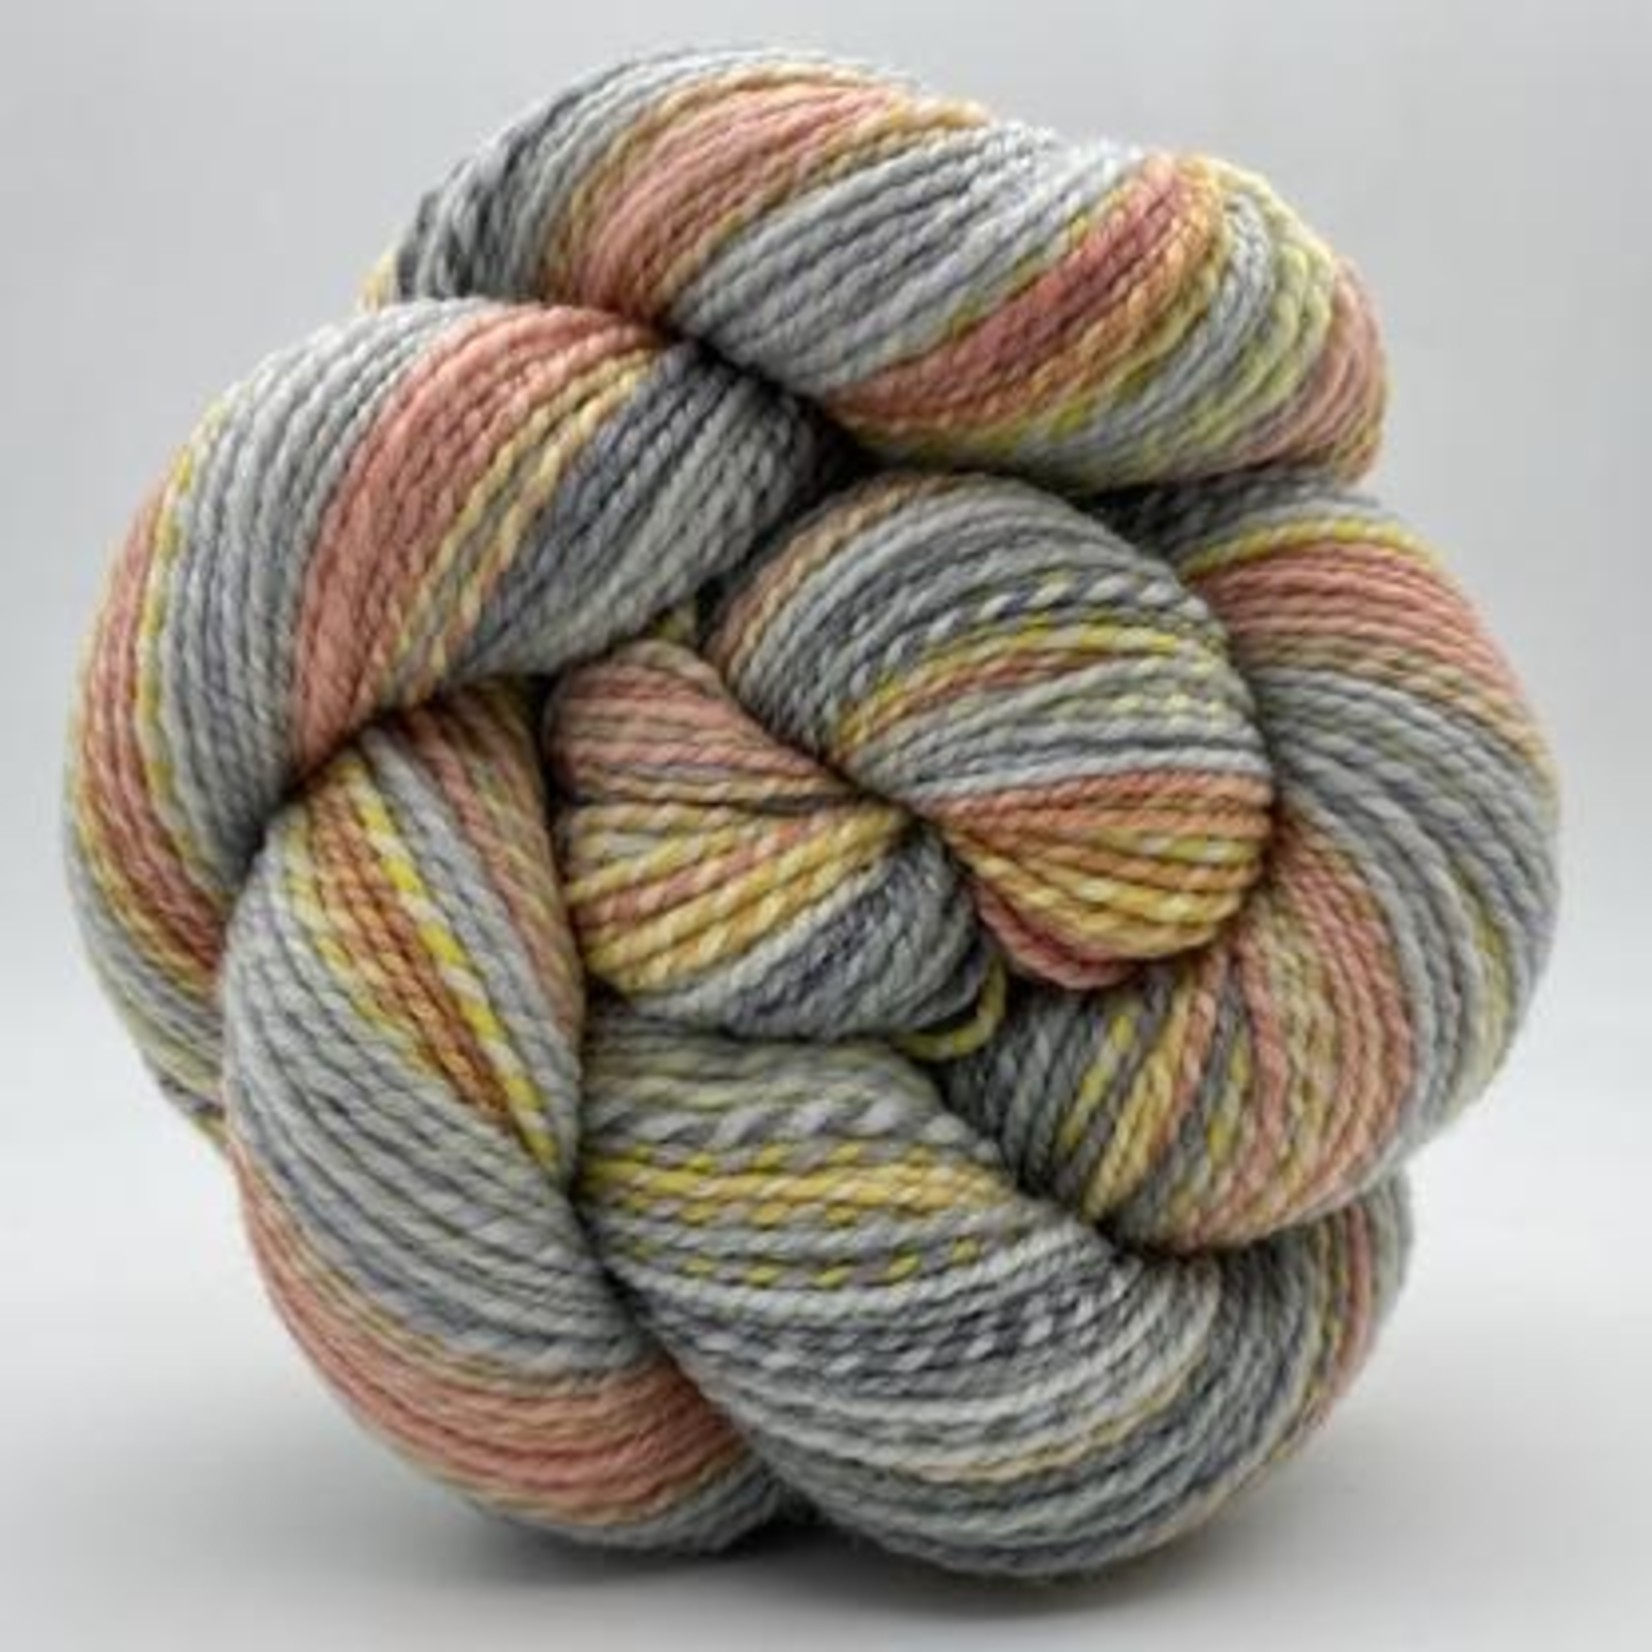 Spincycle Yarn Dyed in the Wool, Verba Volant